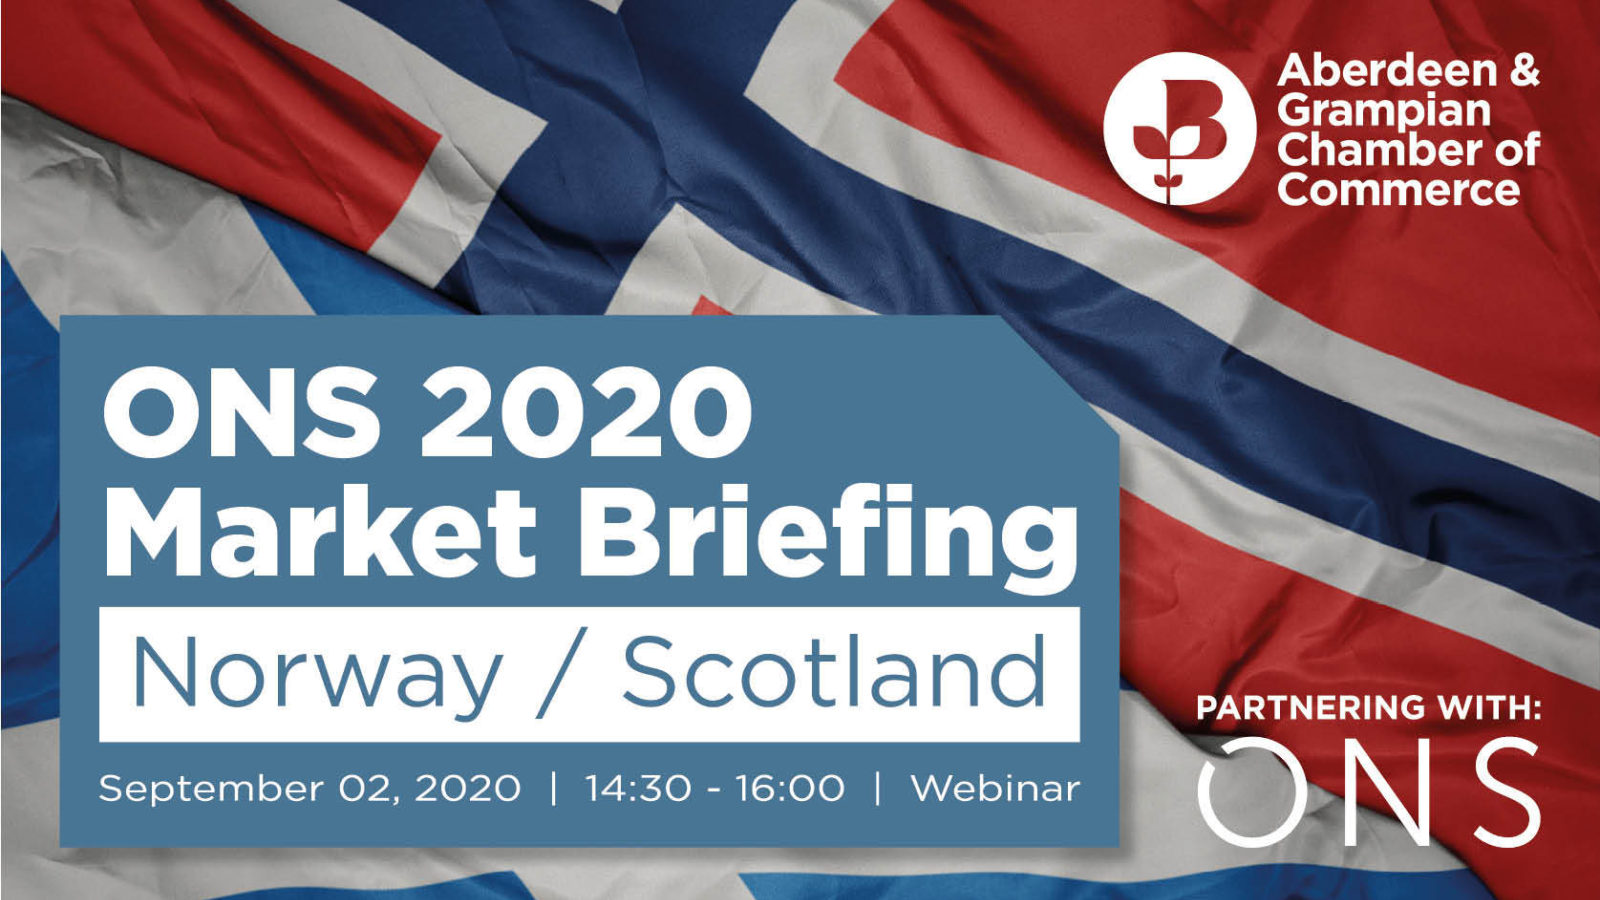 ONS 2020 Market Briefing – Norway / Scotland